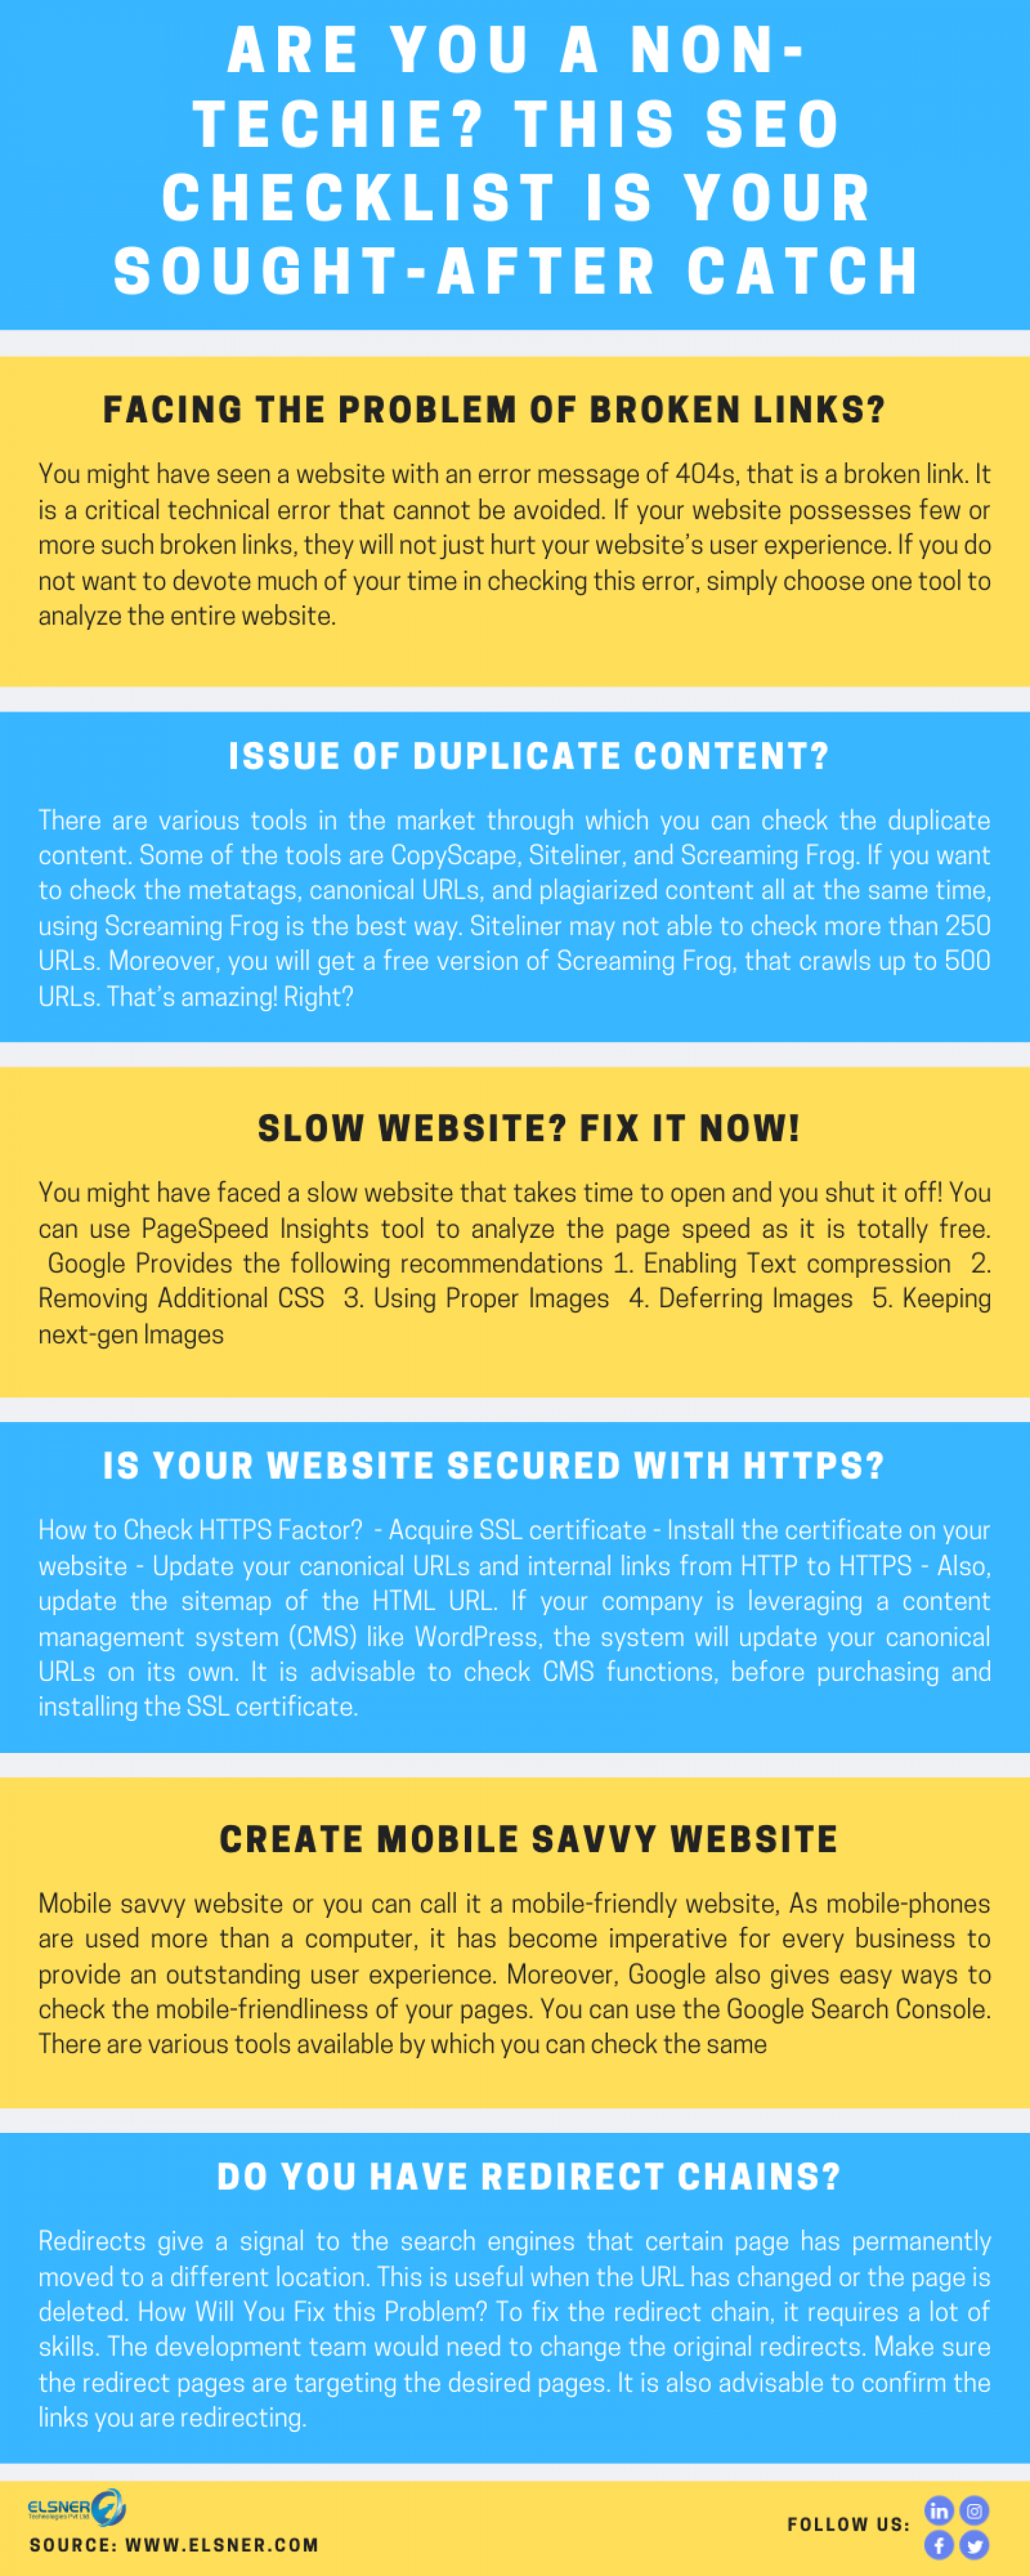 Are You a Non-techie? This SEO Checklist is Your Sought-after Catch Infographic